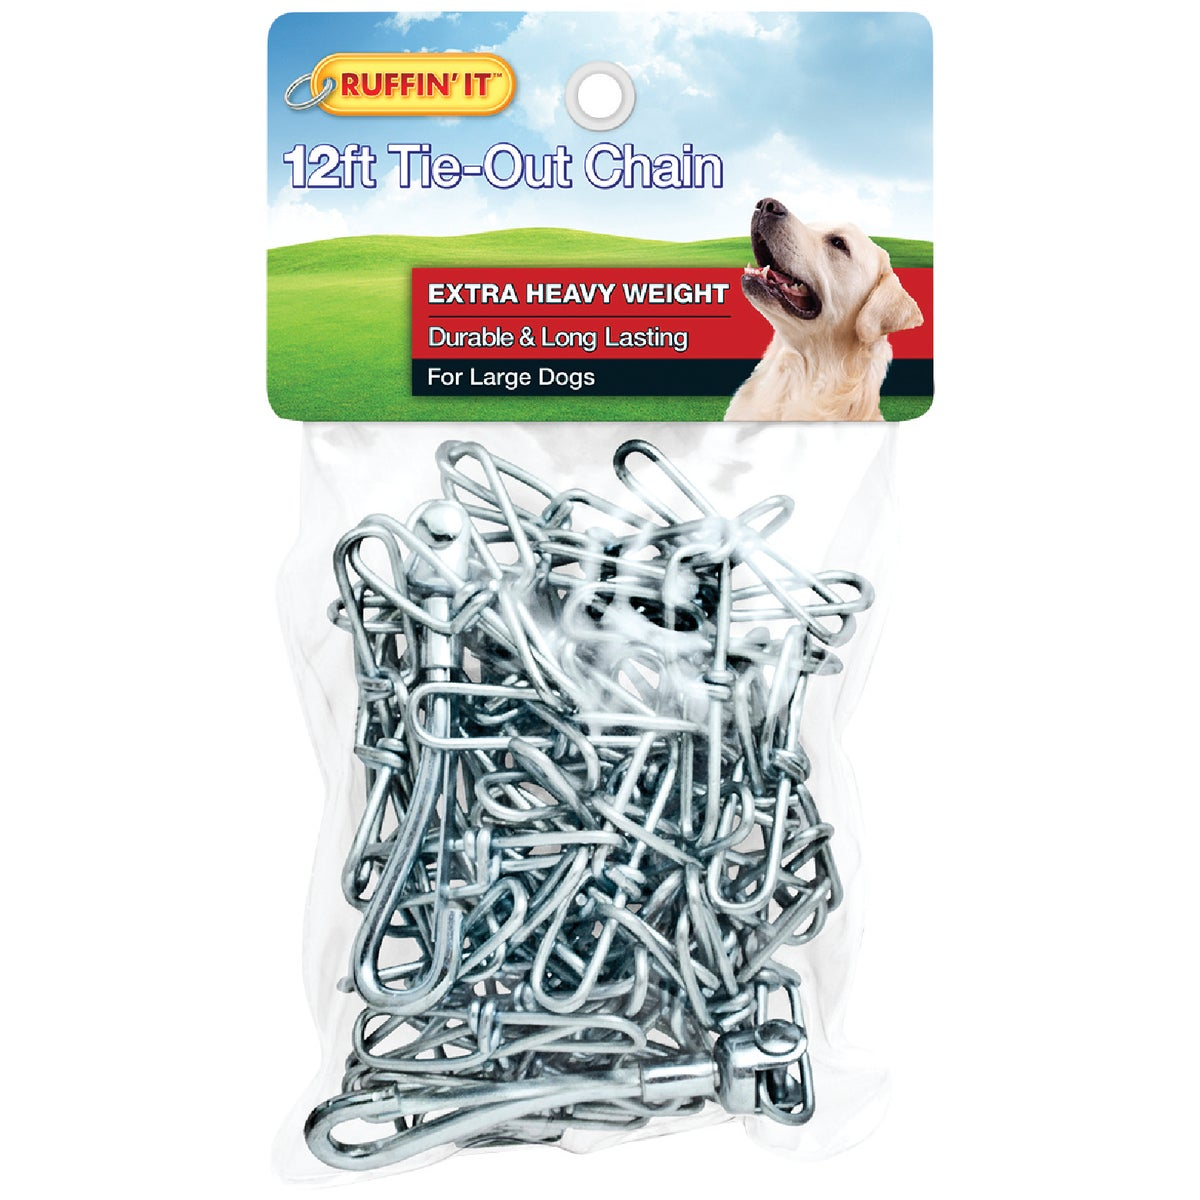 12' HVY TIE-OUT CHAIN - 30120 by Westminster Pet